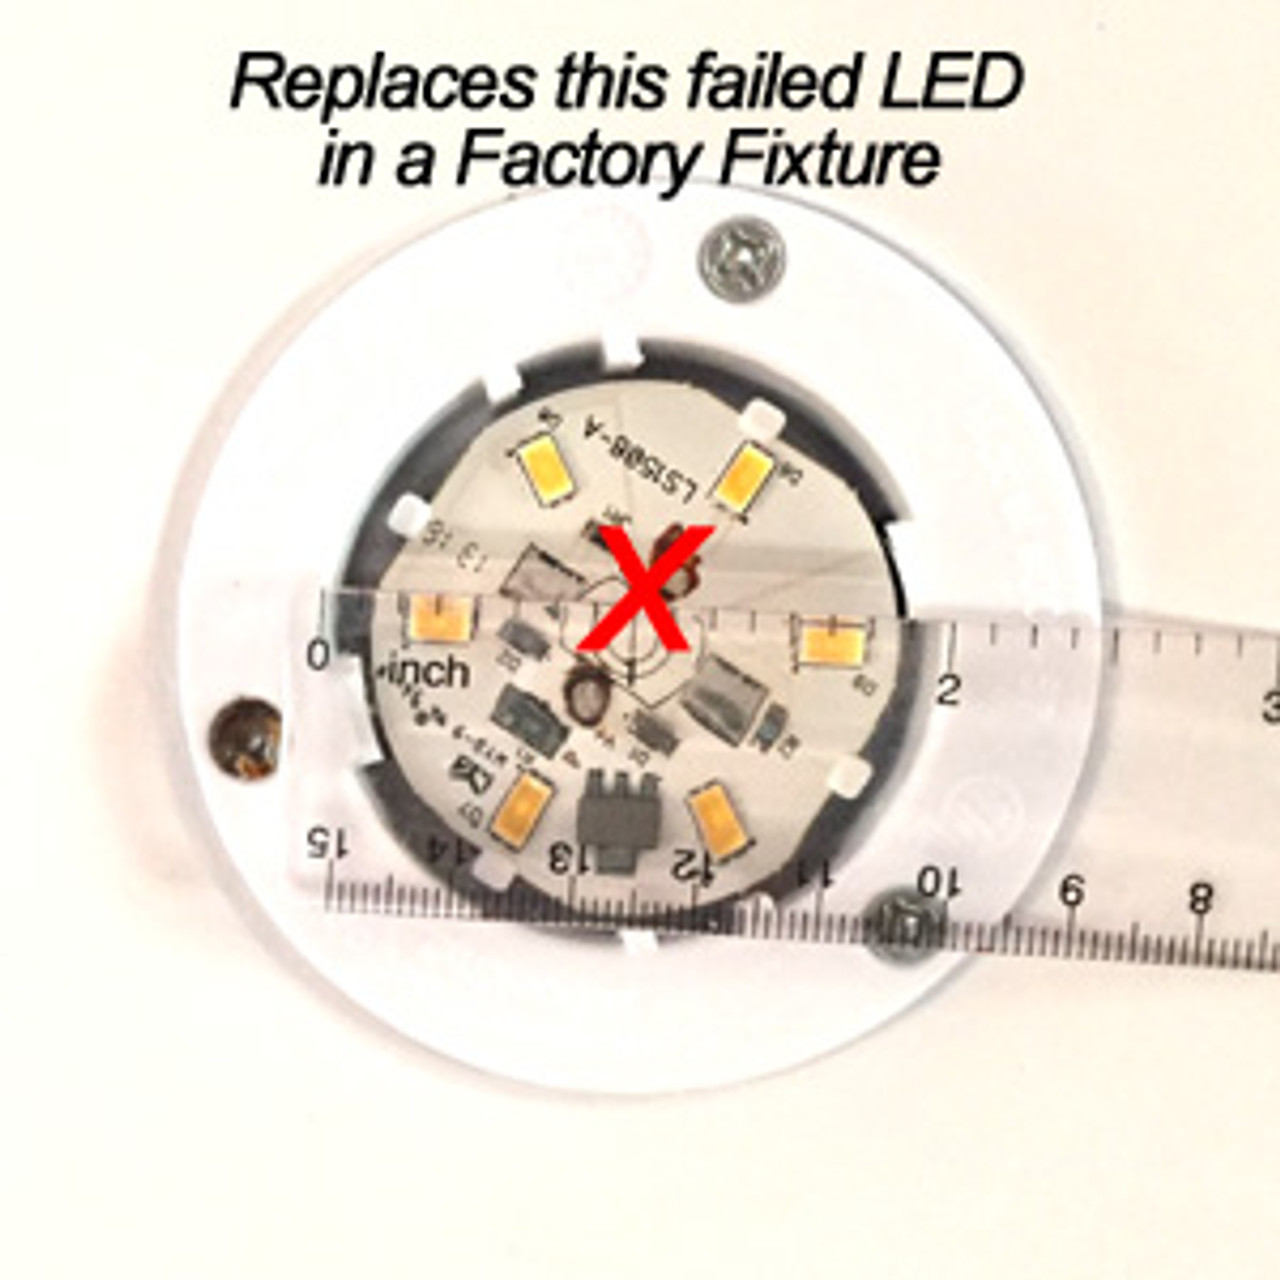 RETROFIT-10-5630-WIRE-NW Replacement for C.E. 57/58 LED Fixture Natural White